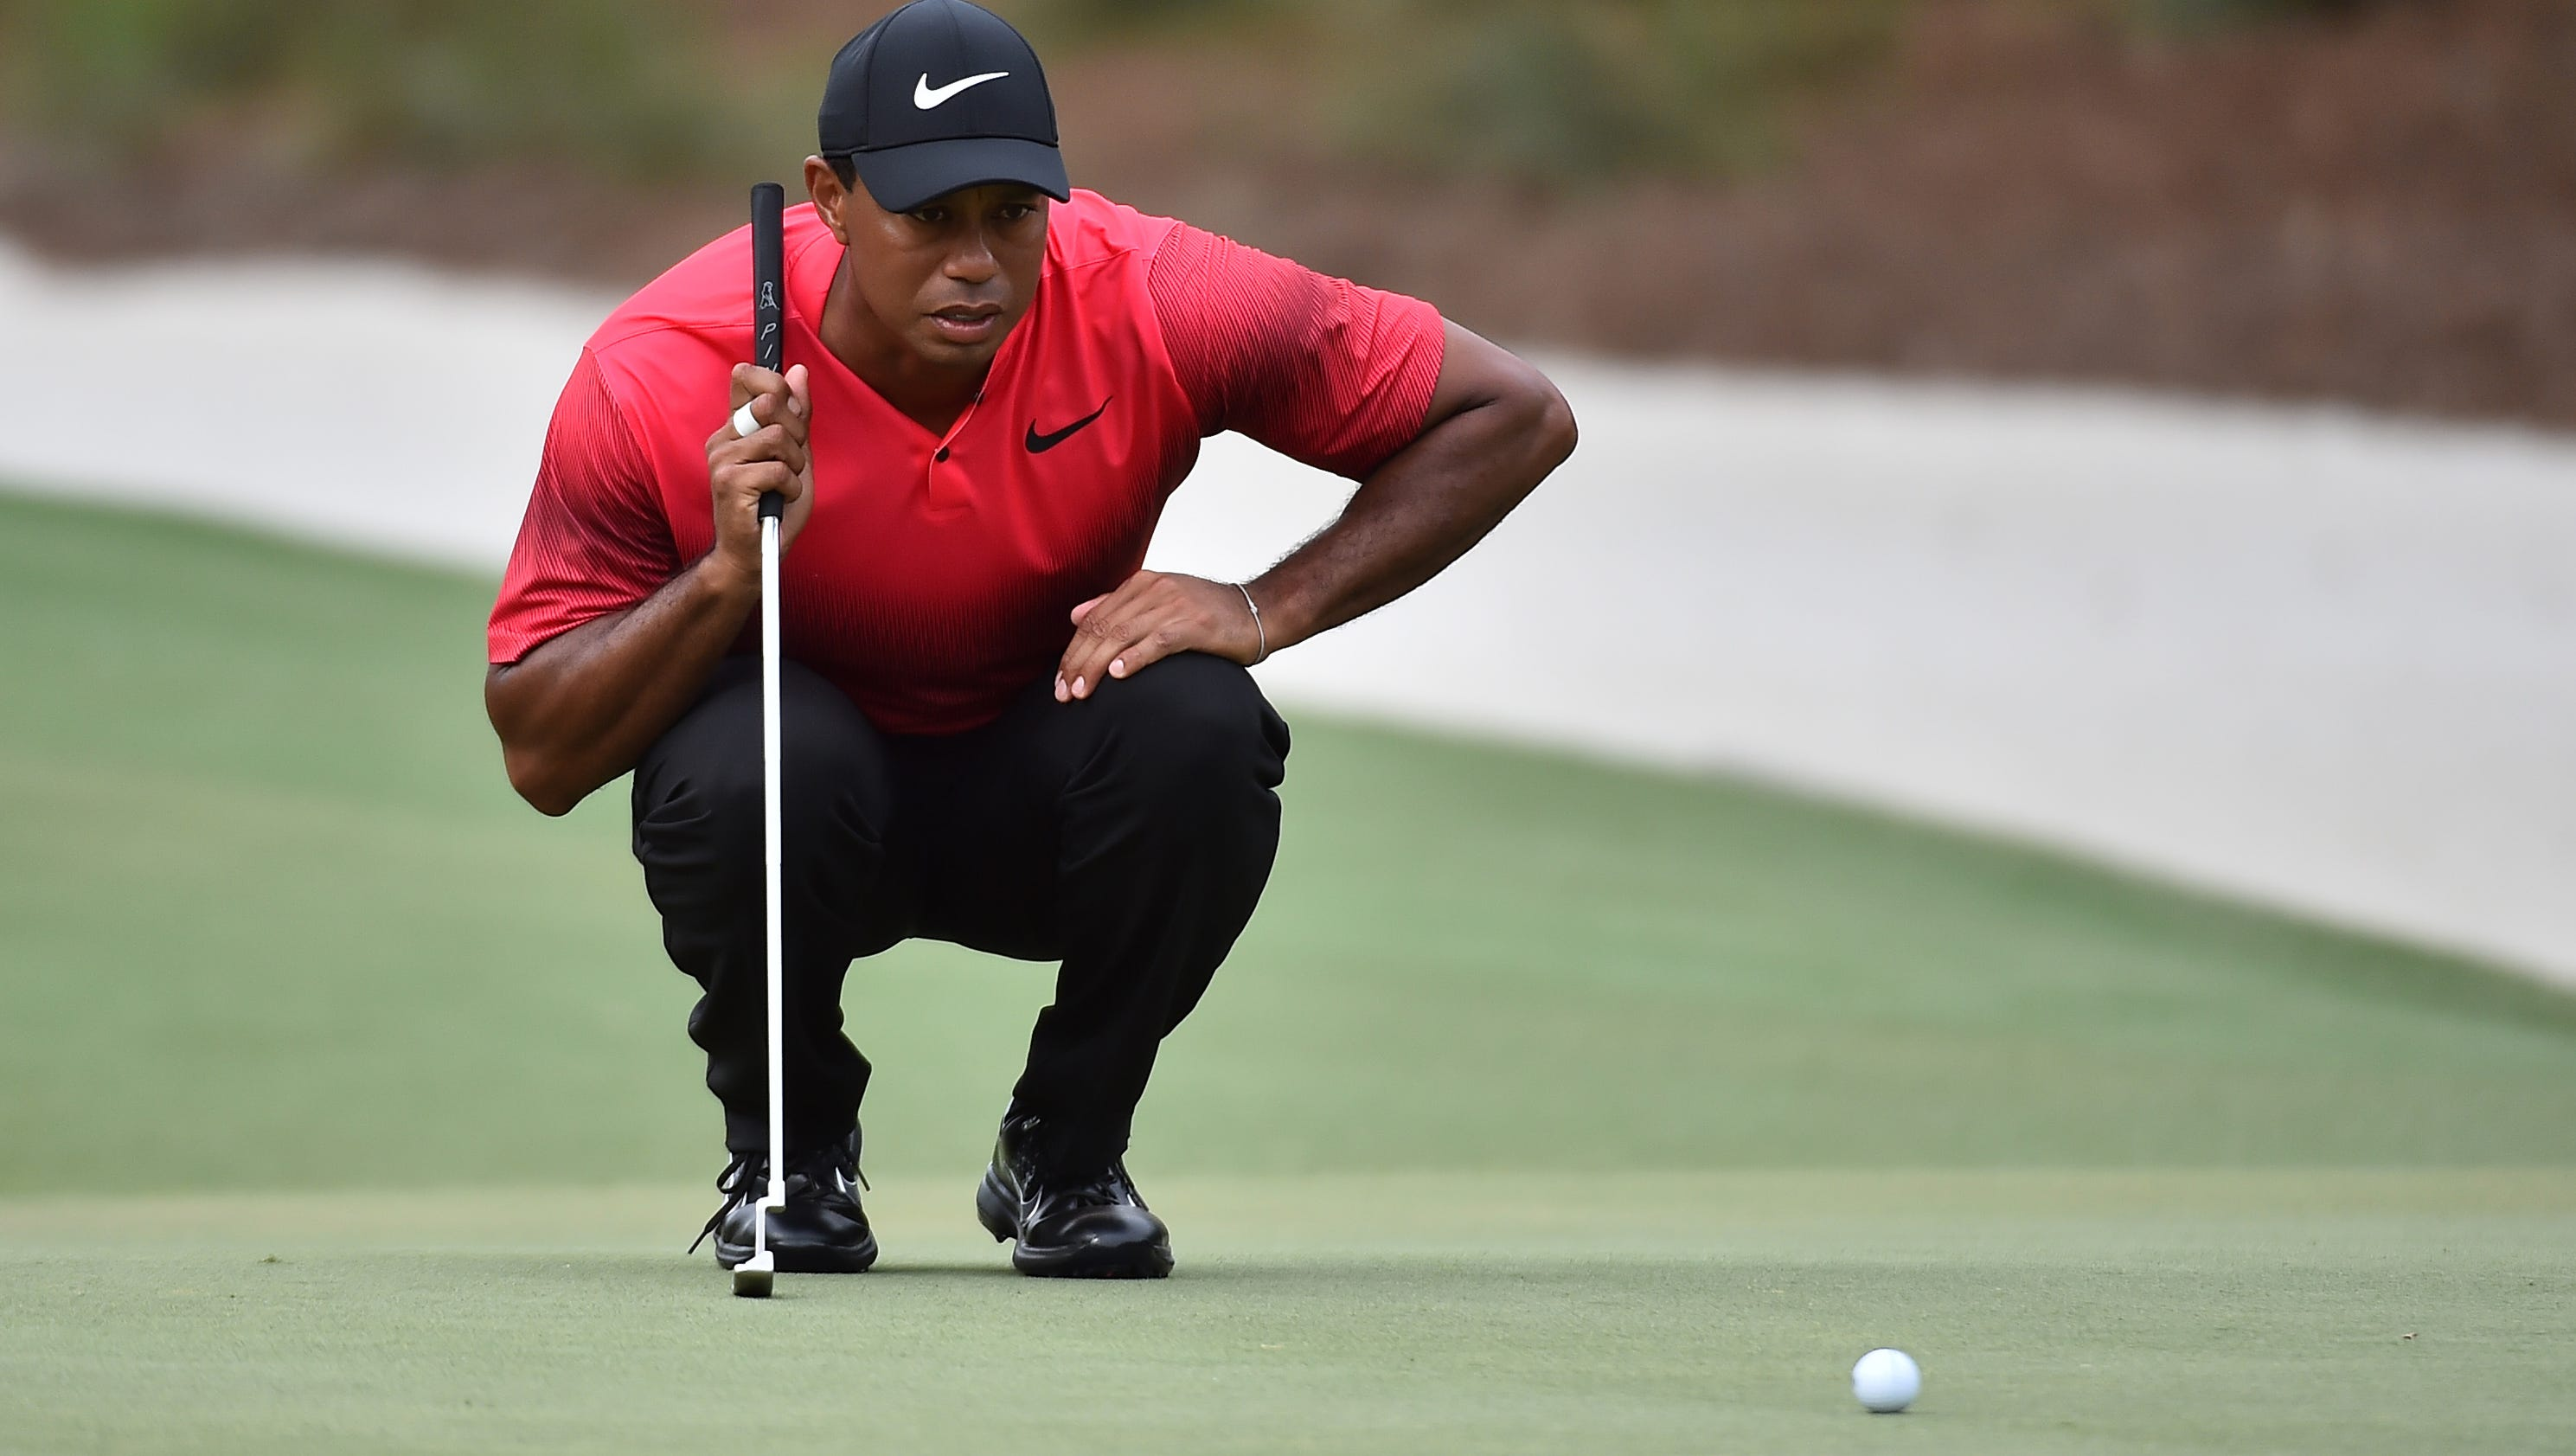 PGA: Tiger Woods Takes Big Step Forward With Players